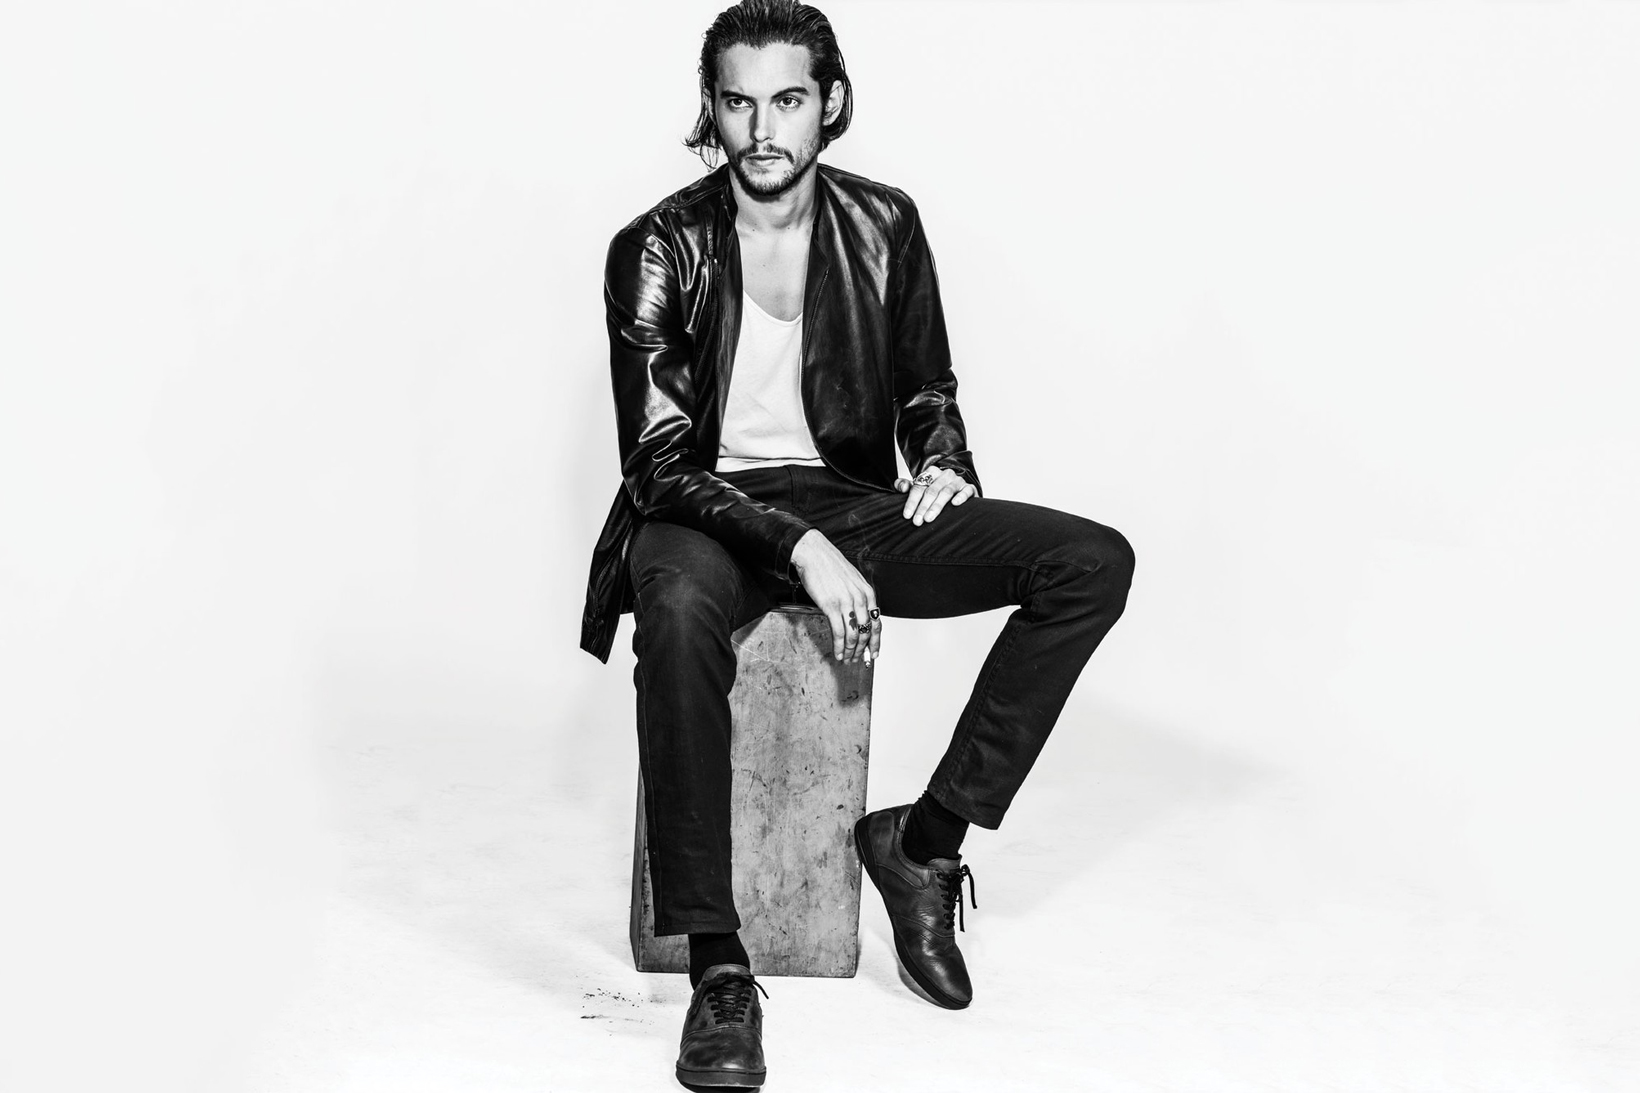 Dylan Rieder, Pro Skateboarder and Model, Passes Away at 28